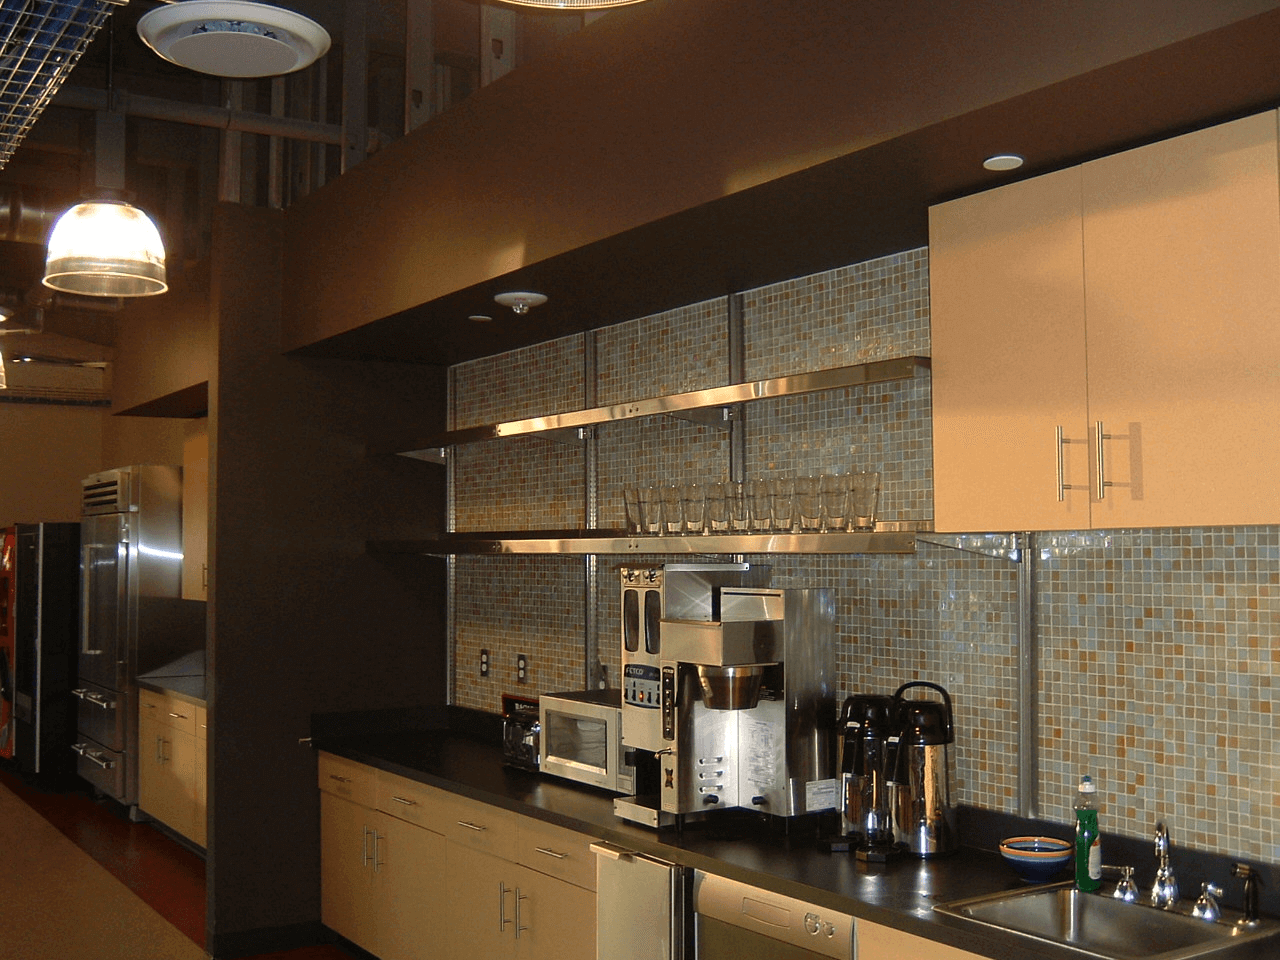 Office Kitchen Shelving by E-Z Shelving Systems